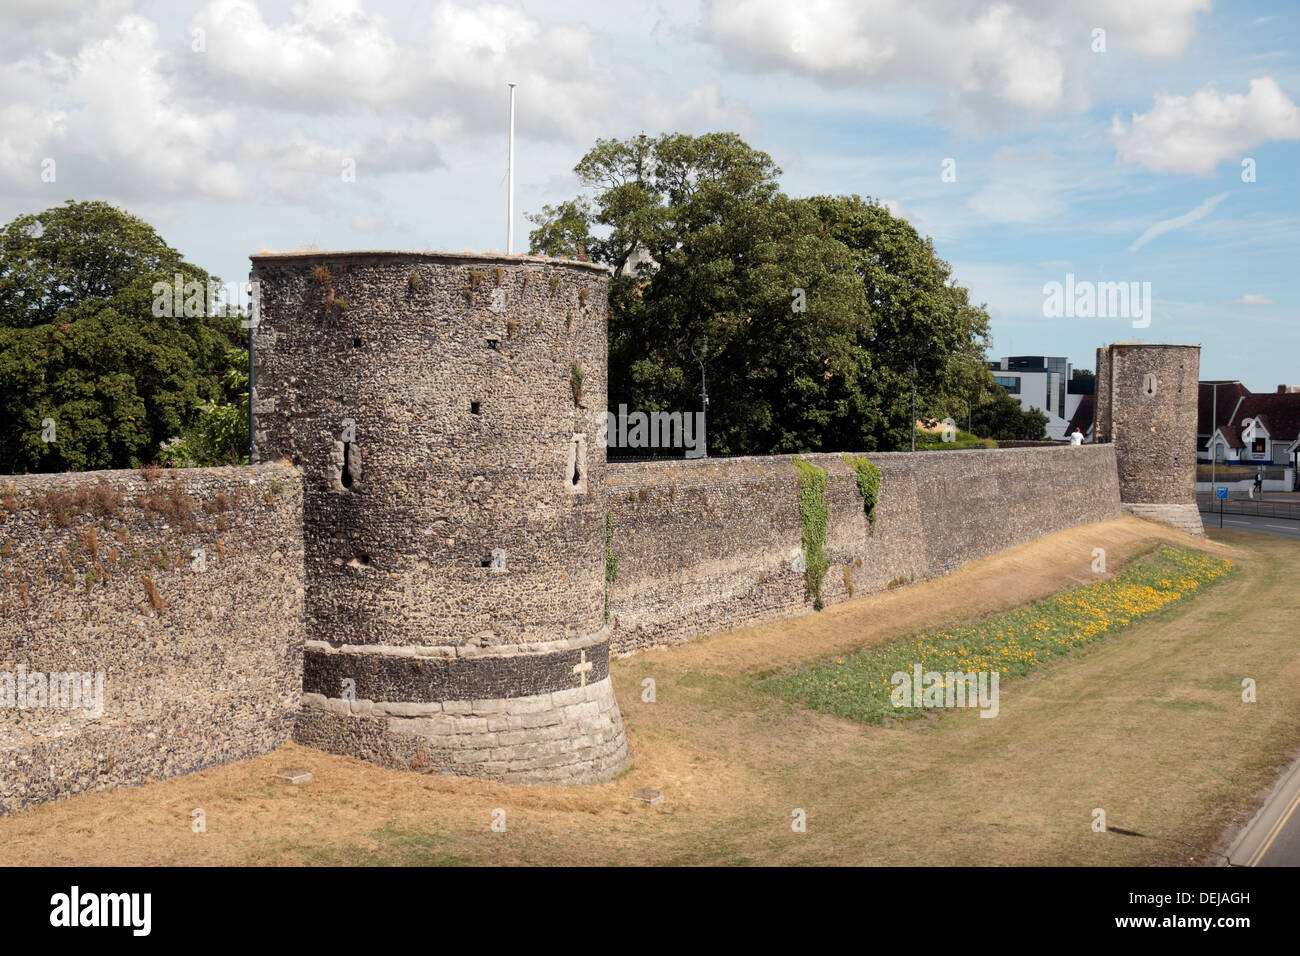 Park of the historic city walls which encircle the centre of Canterbury, Kent, UK. - Stock Image